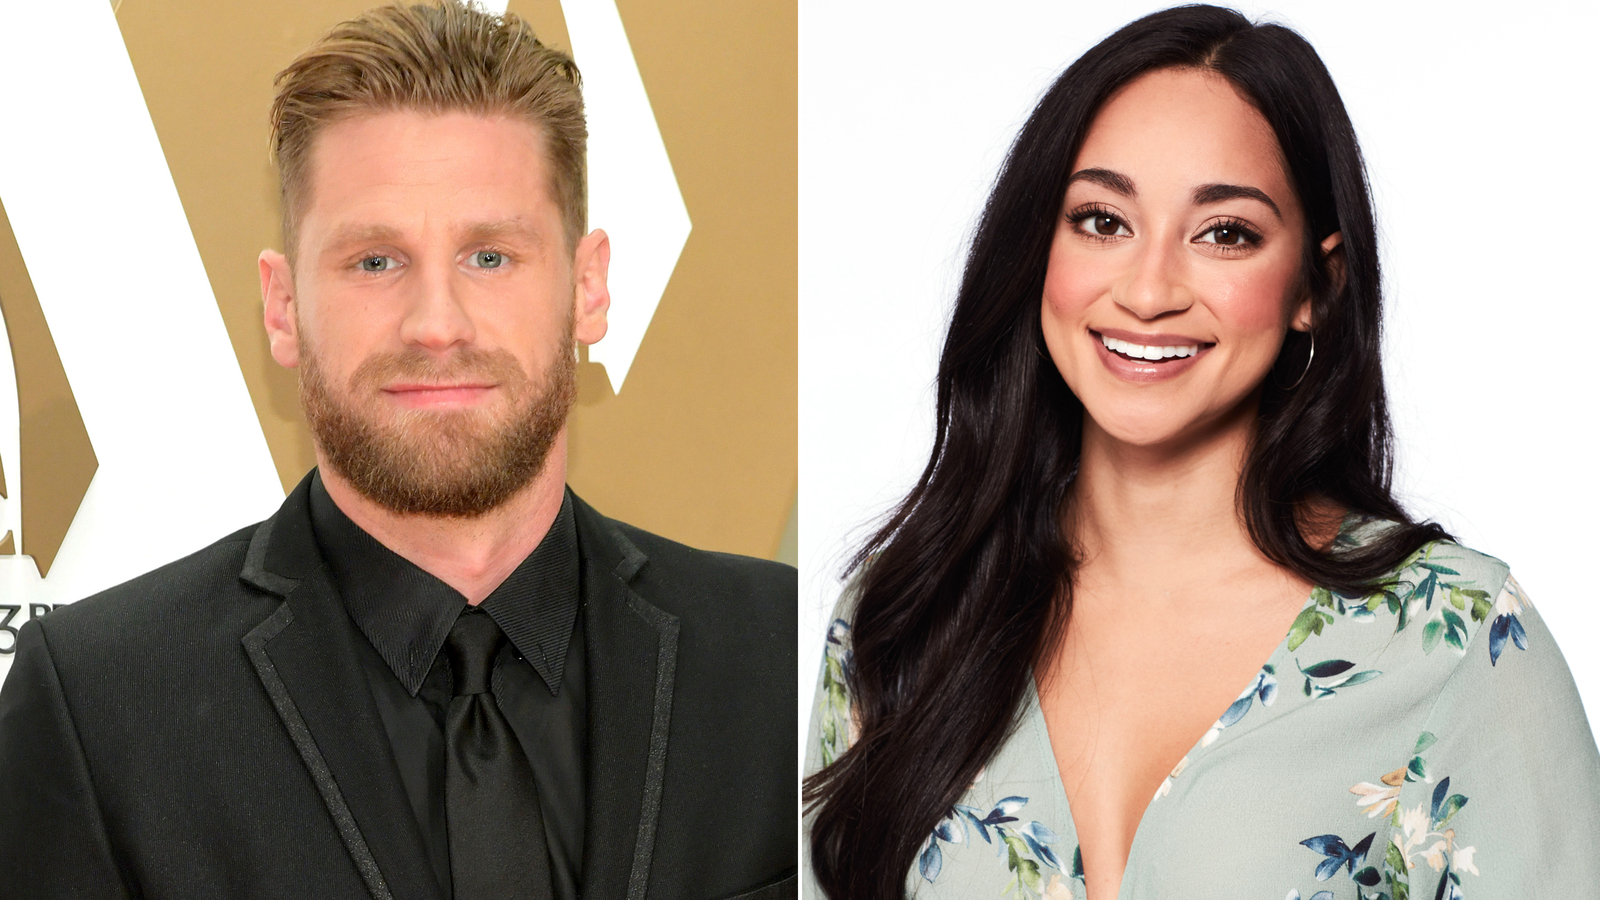 Chase Rice claims 'Bachelor' producers blindsided him with his ex-girlfriend on latest episode